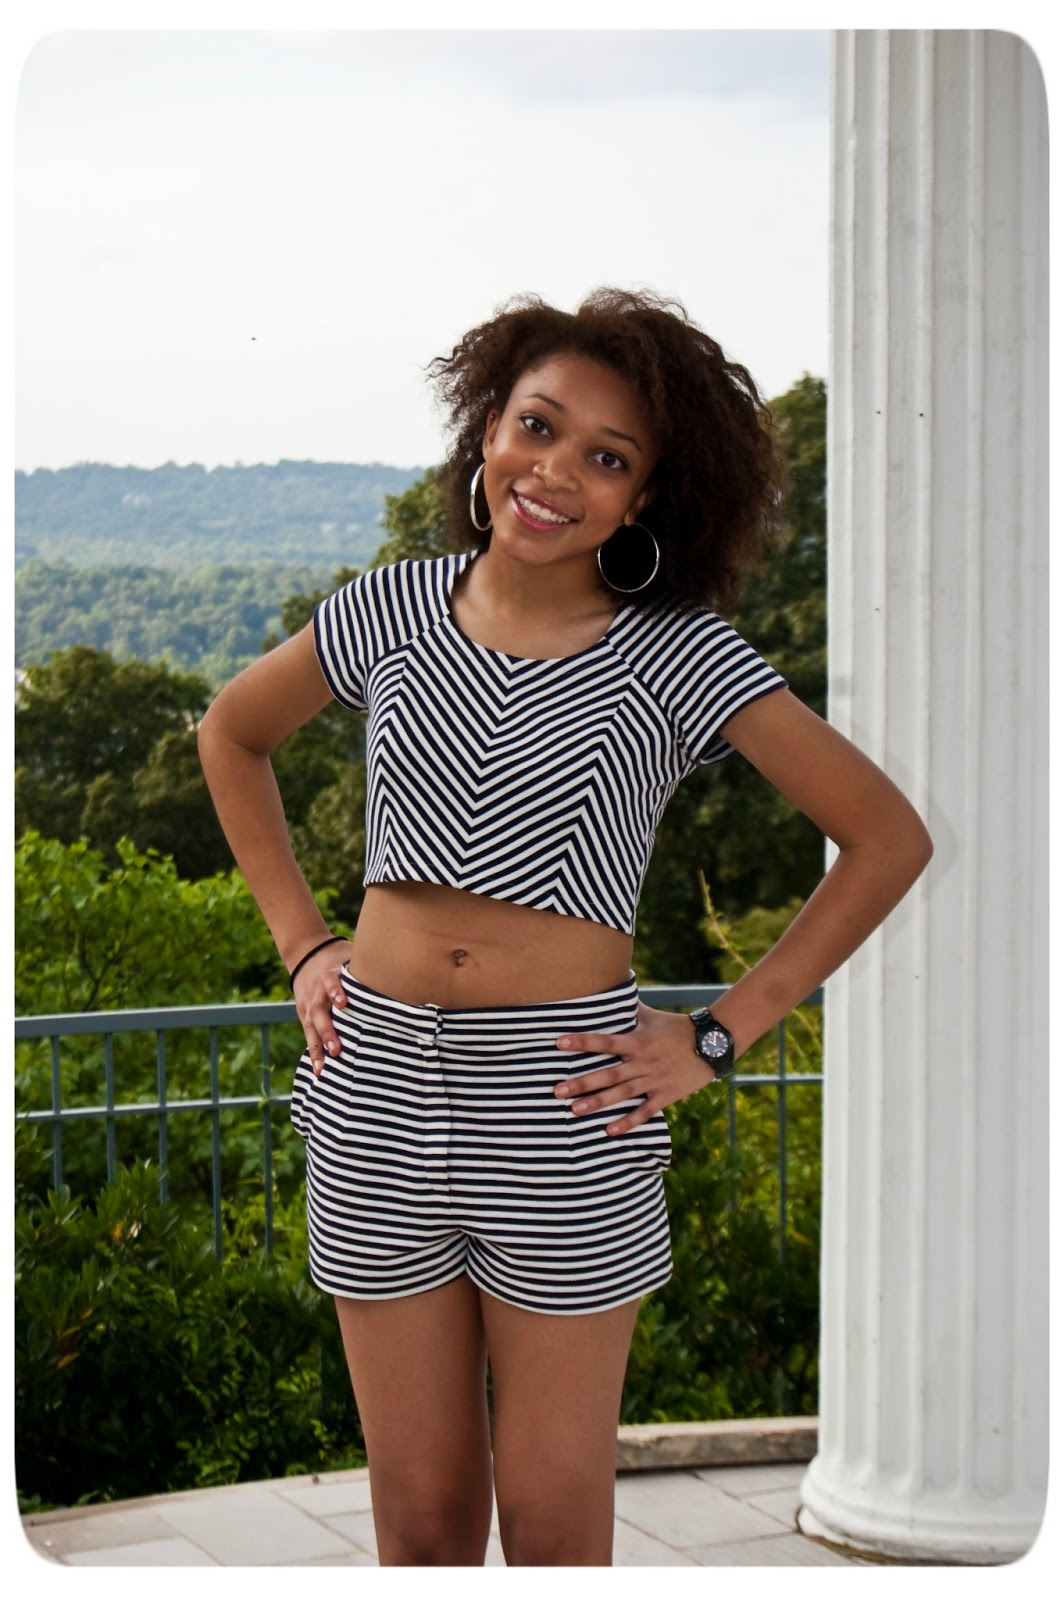 Nautical Crop Top with High Waisted Shorts - Mood Sewing Network